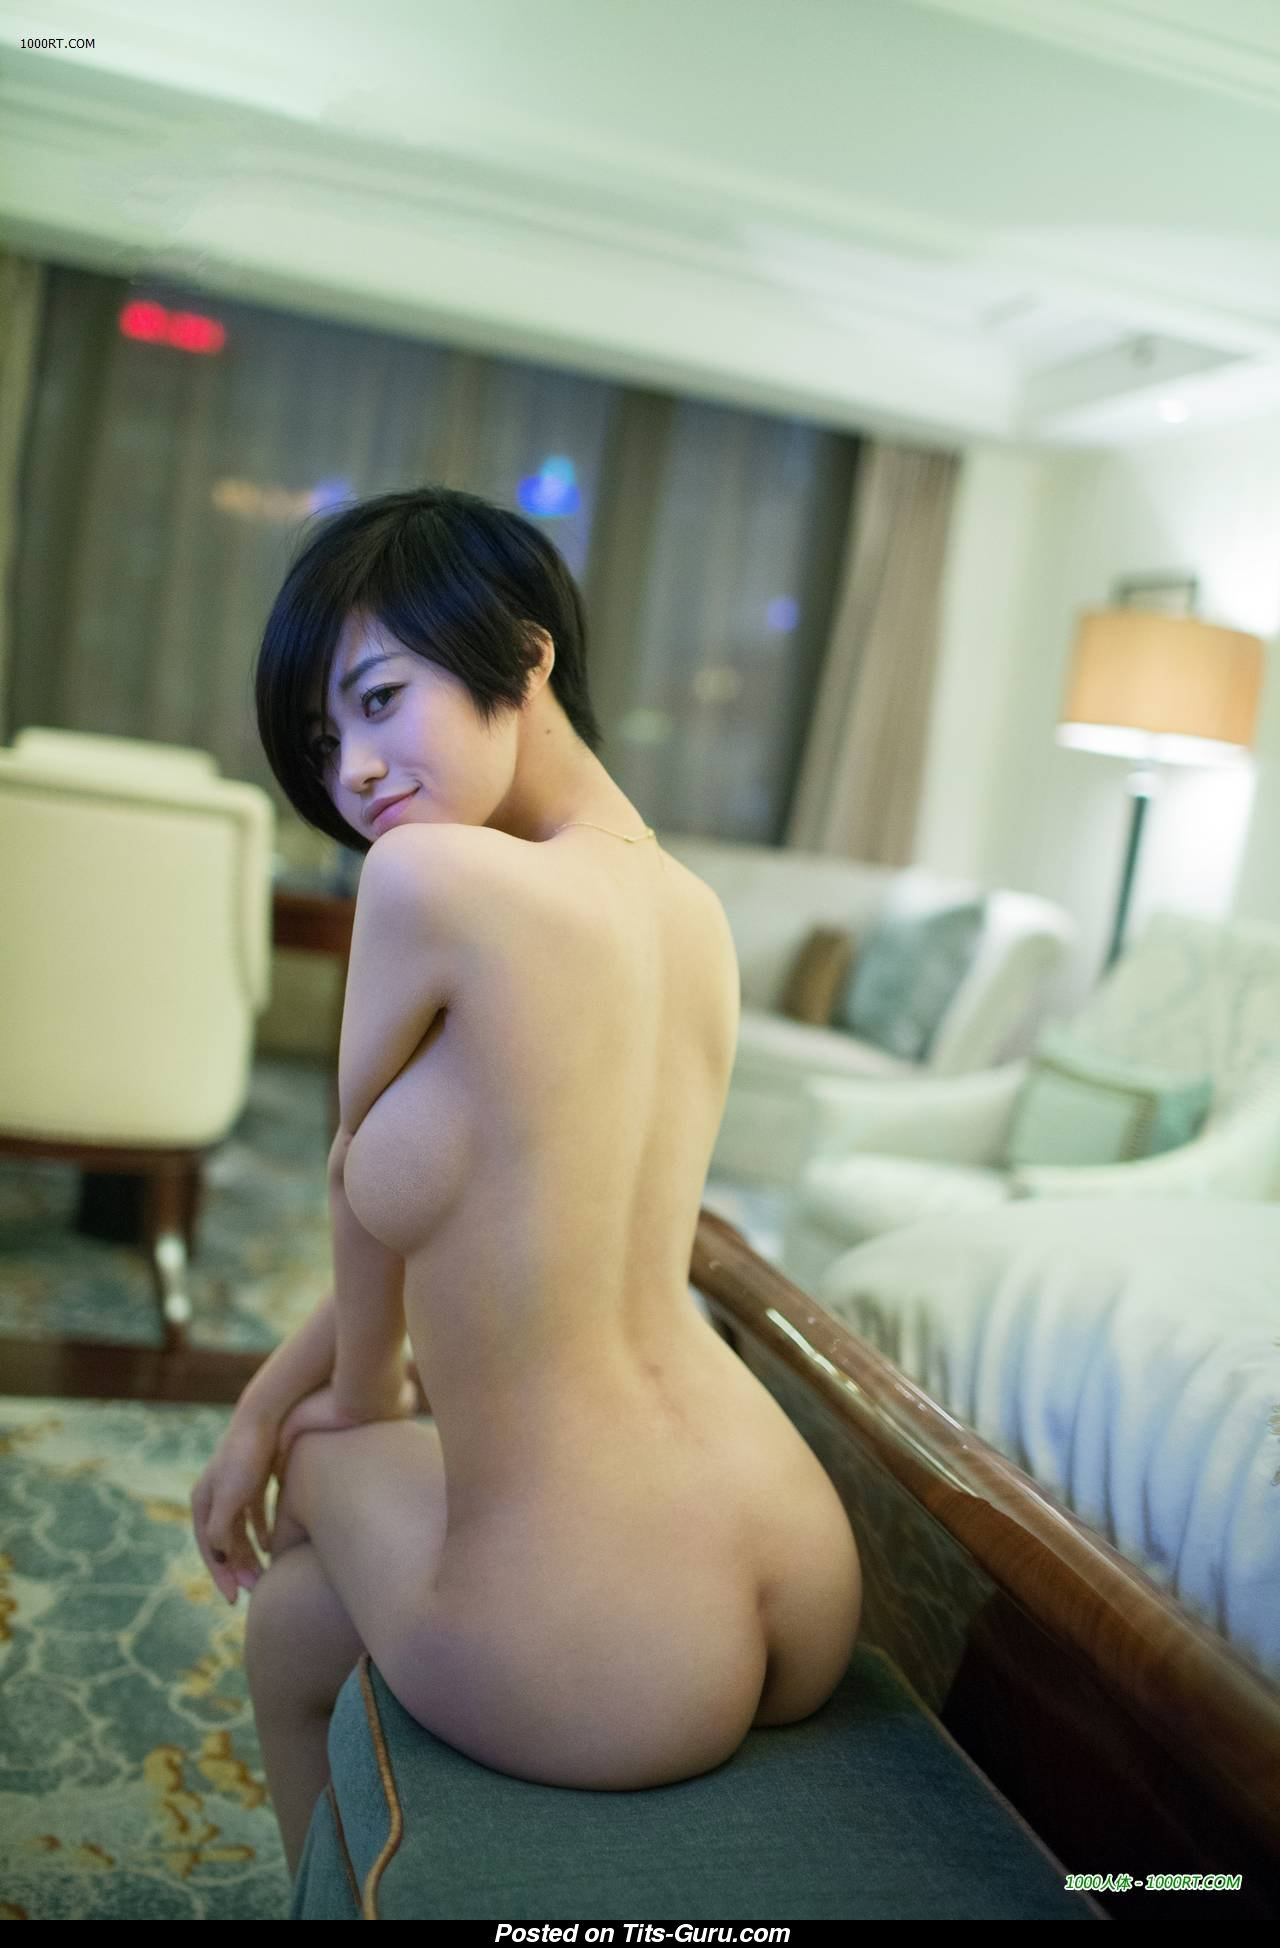 Lina - Asian Girl With Defenseless Sizable Tots Porn Foto -3760